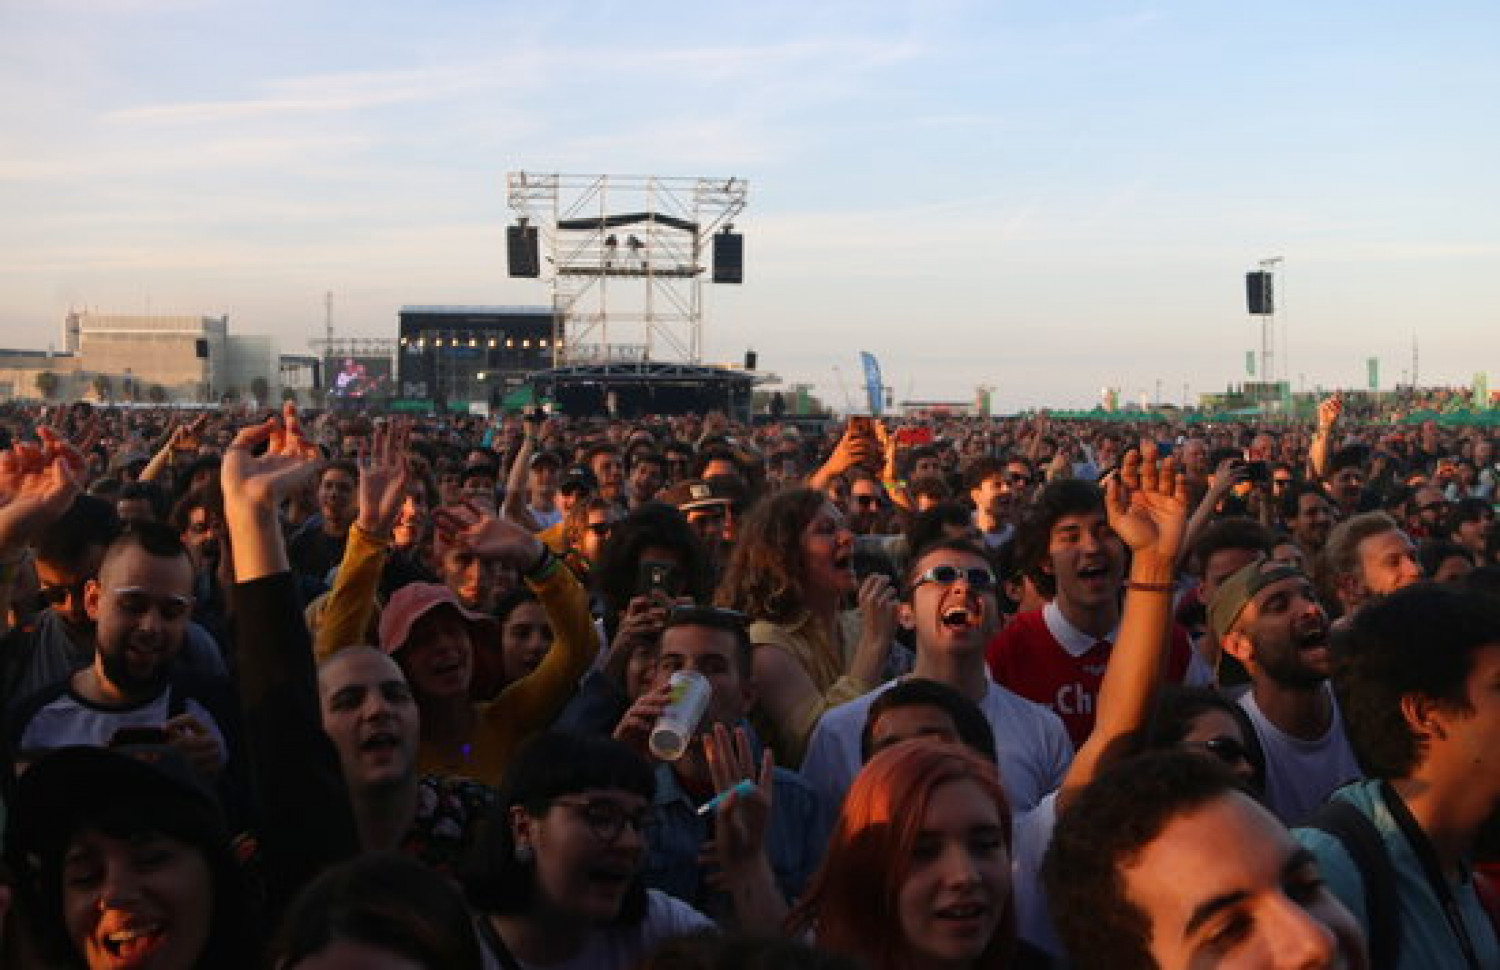 Fans enjoying a performance during the 2019 edition of Primavera Sound (by Violeta Gumà)